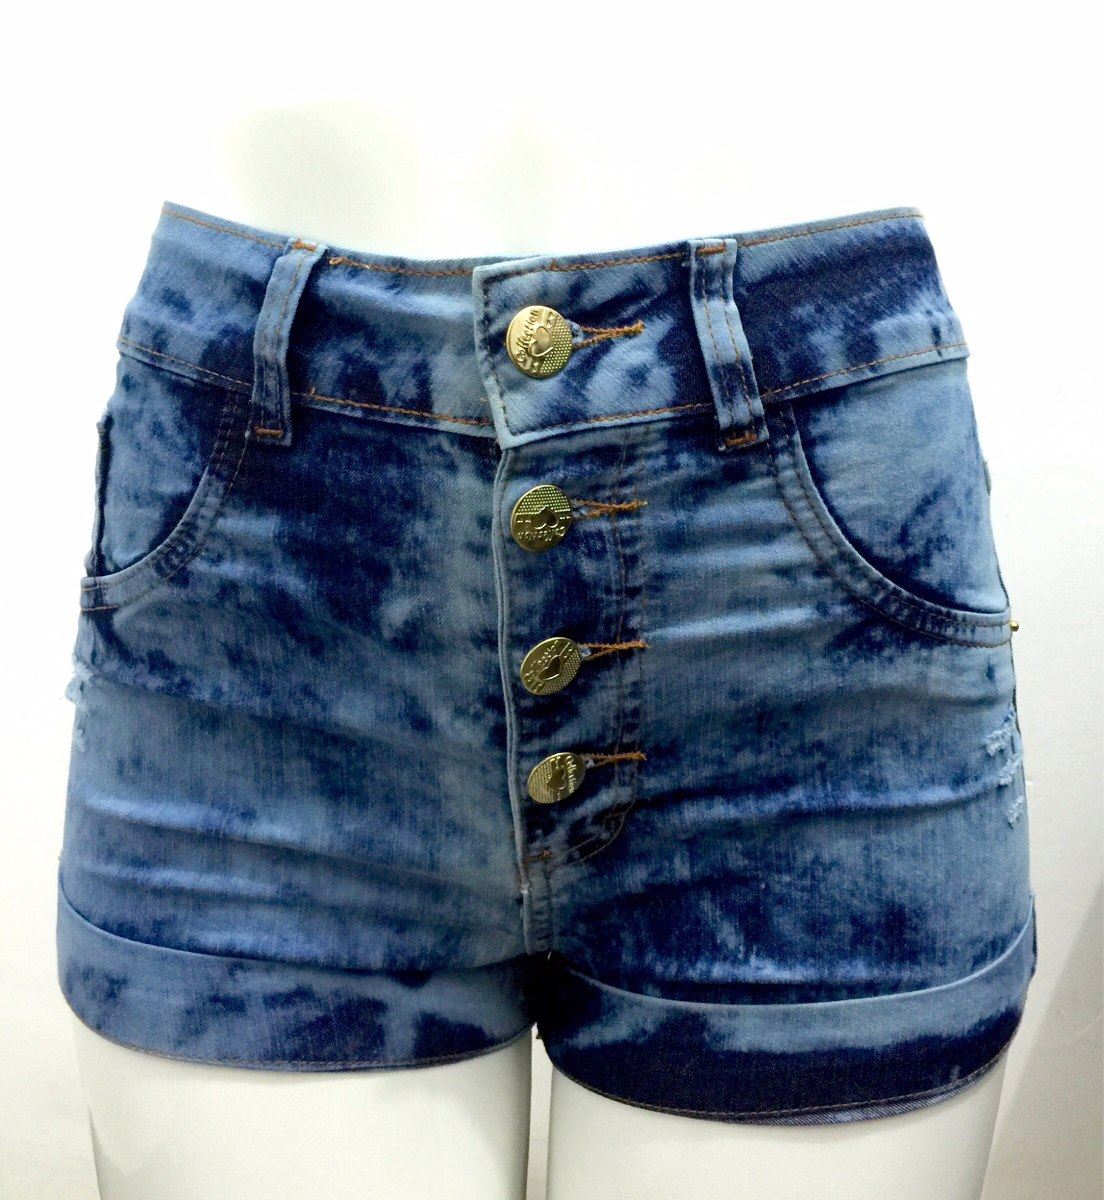 Shorts Jeans 38 Damenmode